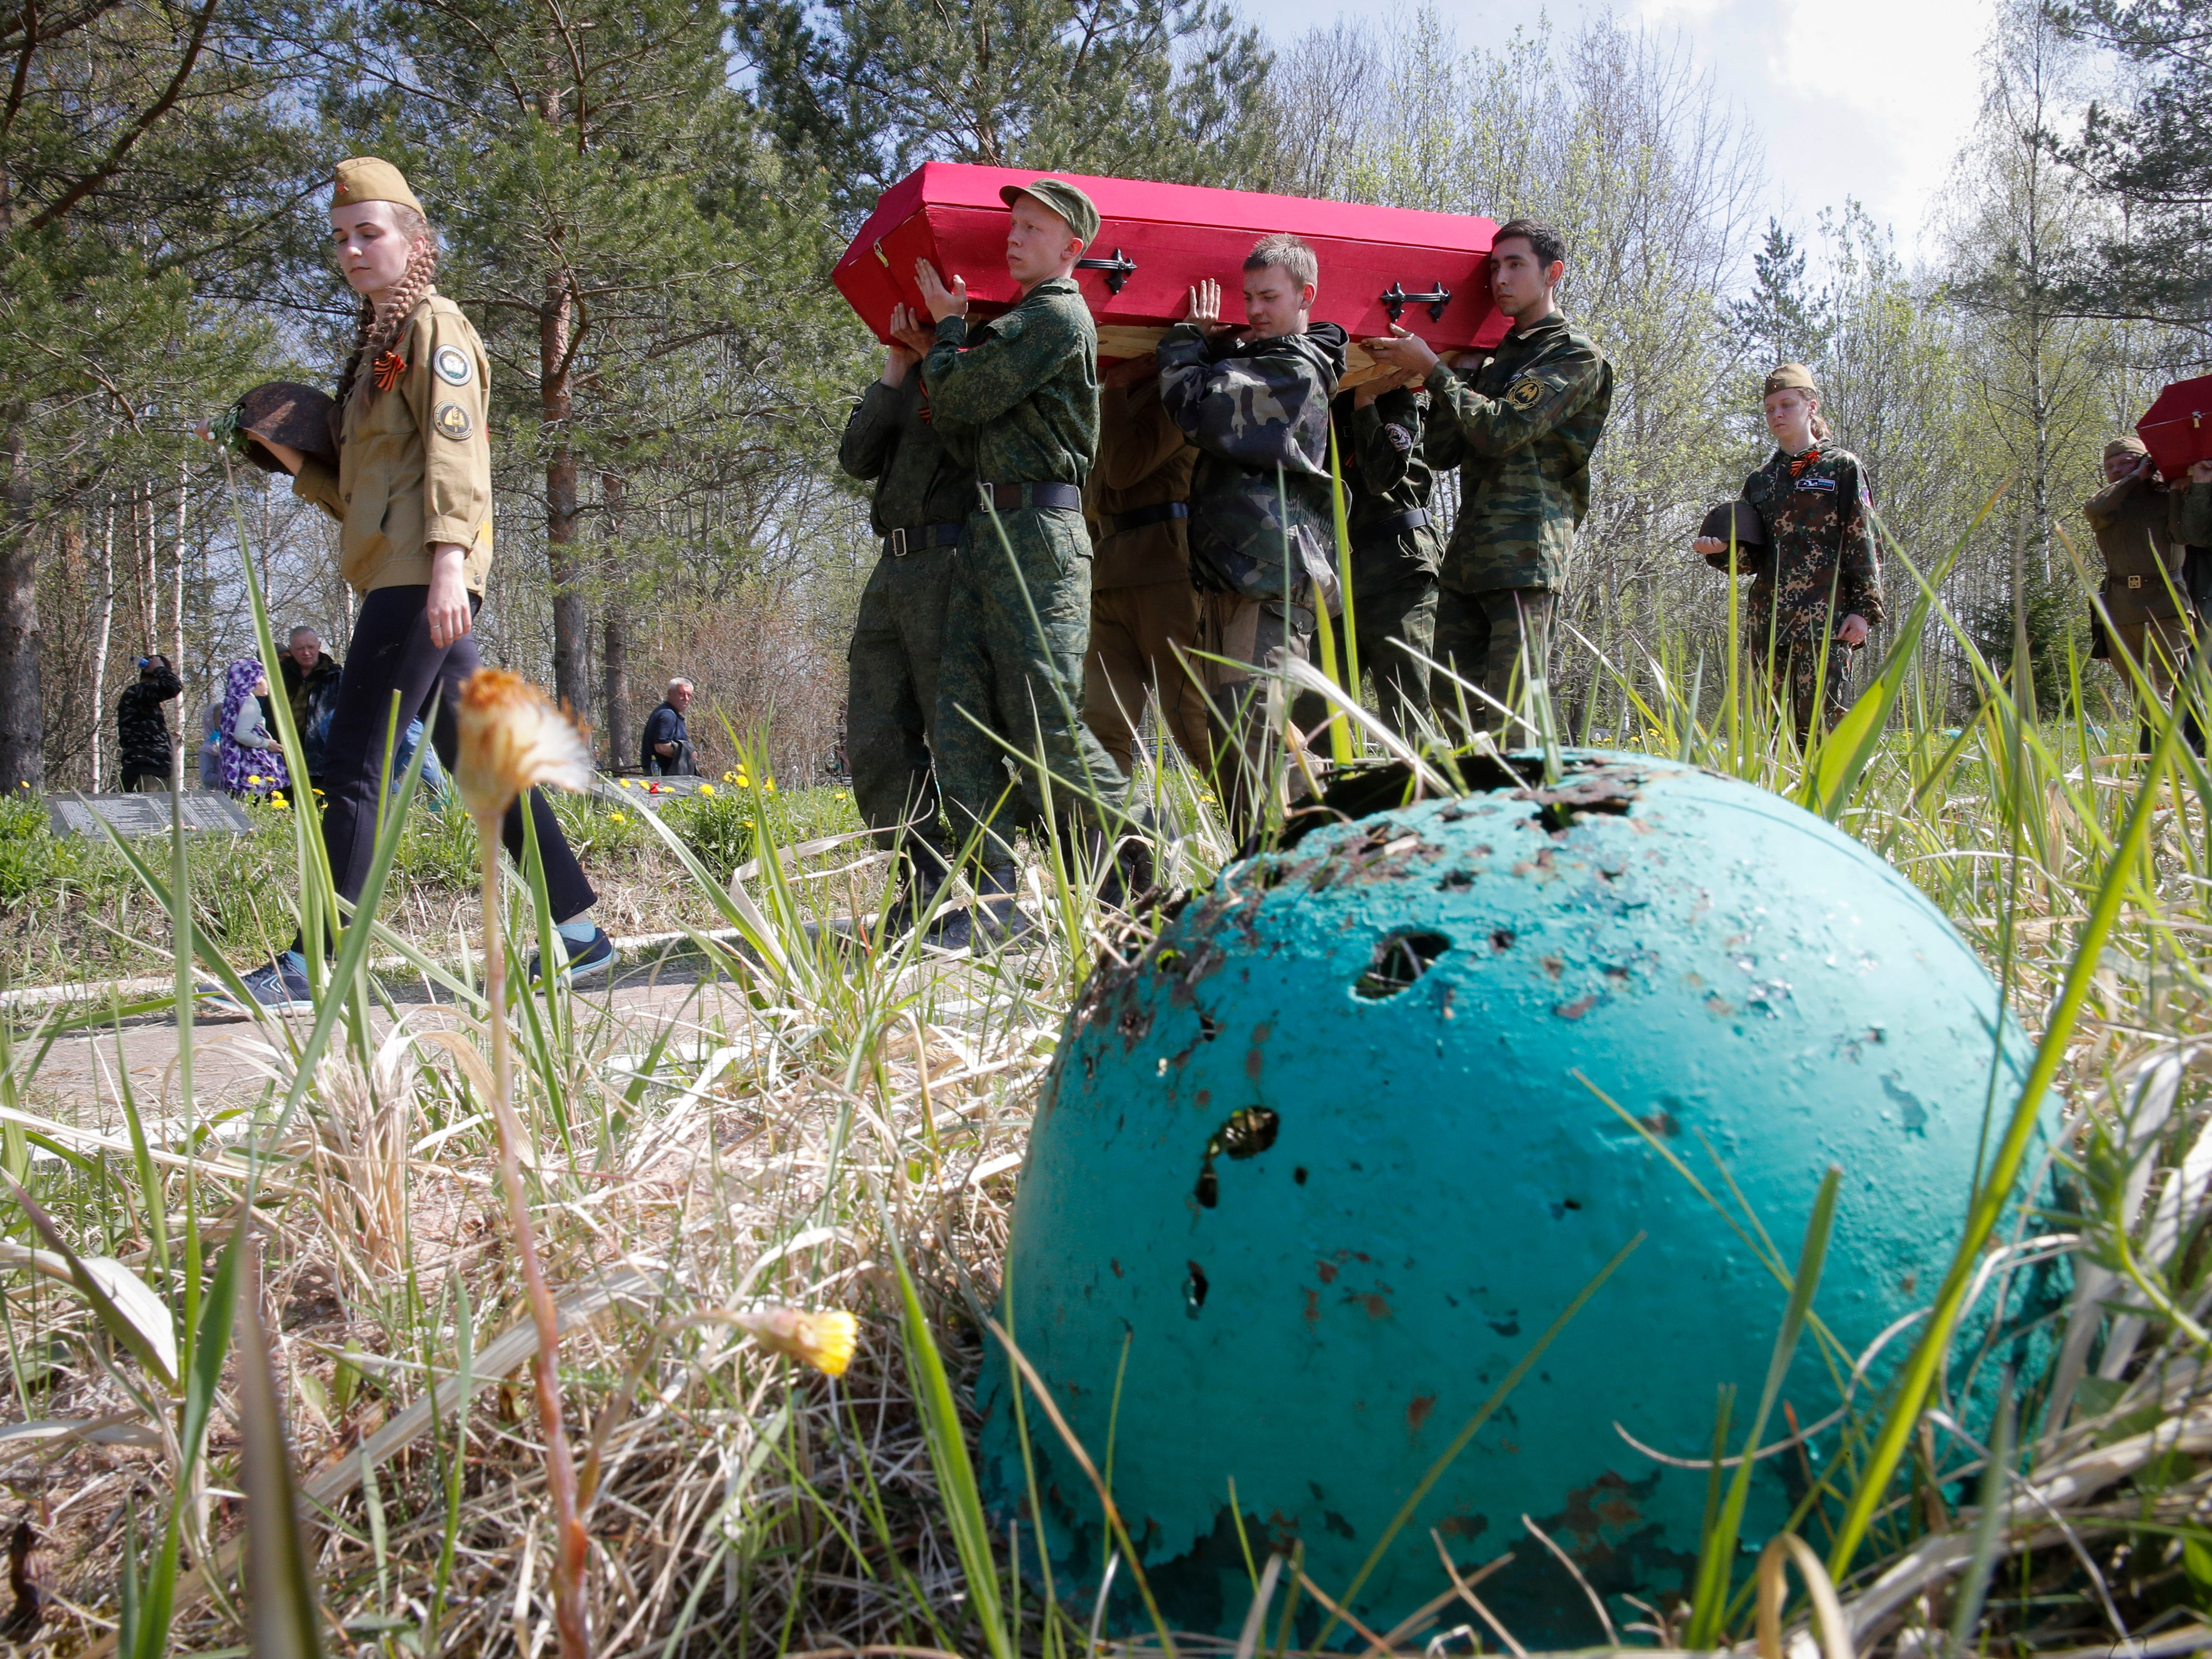 Members of volunteer search teams carry coffins with remains of Soviet soldiers killed during World War II, during a reburial ceremony in a memorial cemetery at Chudskoy Bor, 100 km (62 miles) South from St.Petersburg, Russia, Friday, May 10, 2019. People came to a World War II battleground outside St. Petersburg this week to bury the remains of 92 Soviet soldiers recovered by volunteer search teams.